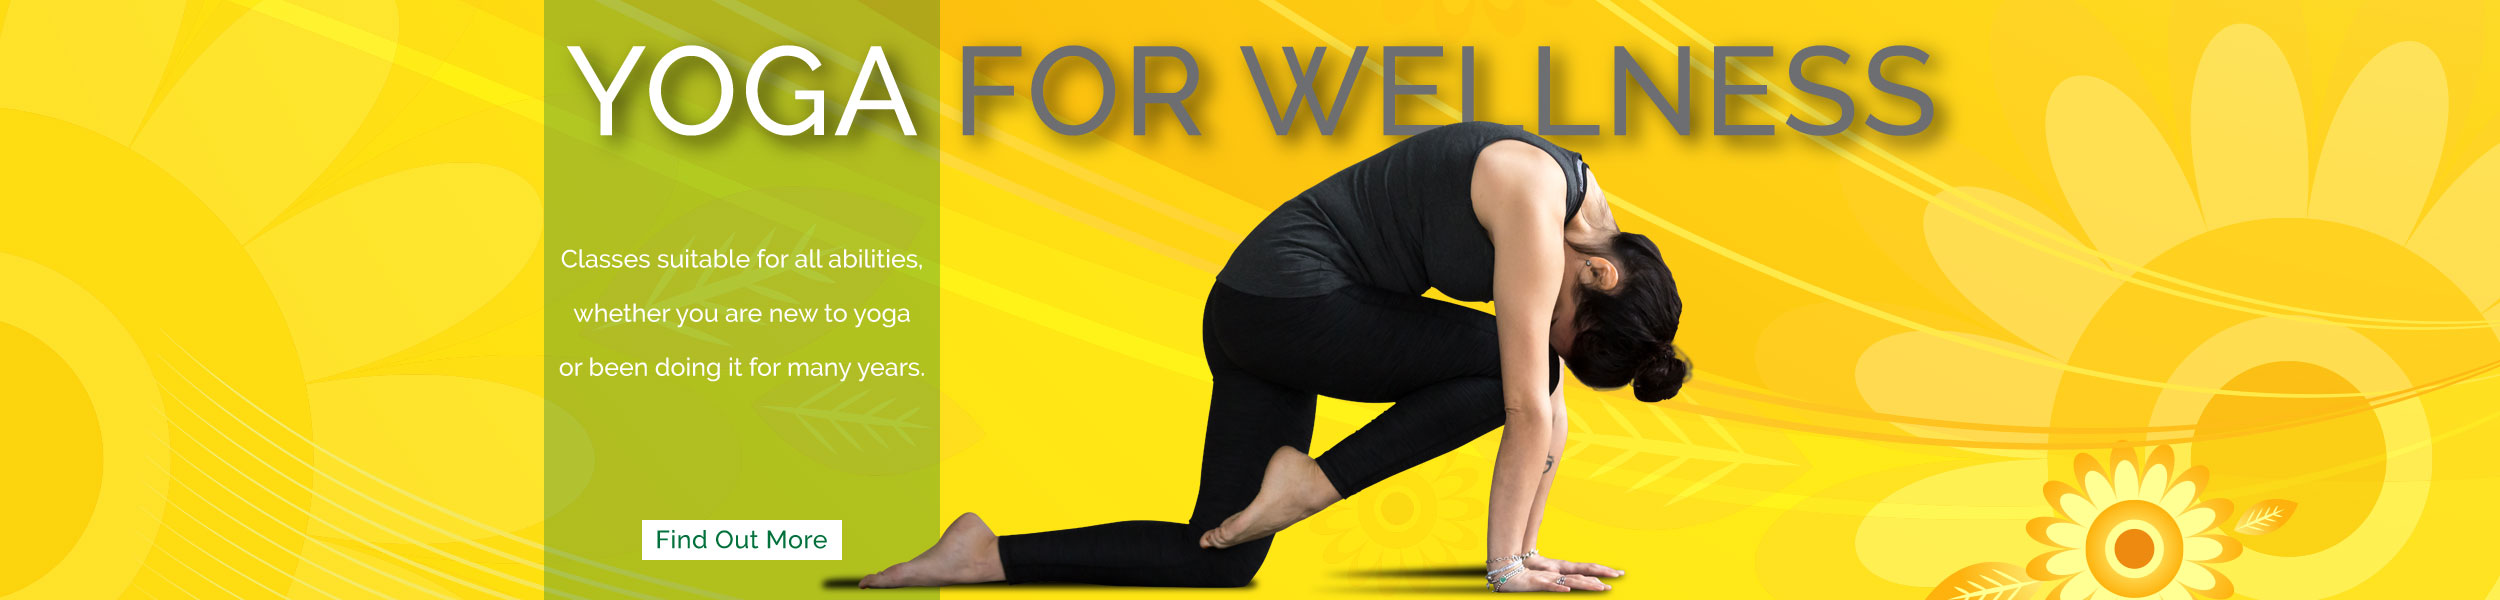 Yoga for wellness // Home slider // Eat & Breathe // Classes suitable for all abilities, whether you are new to yoga or been doing it for many years!